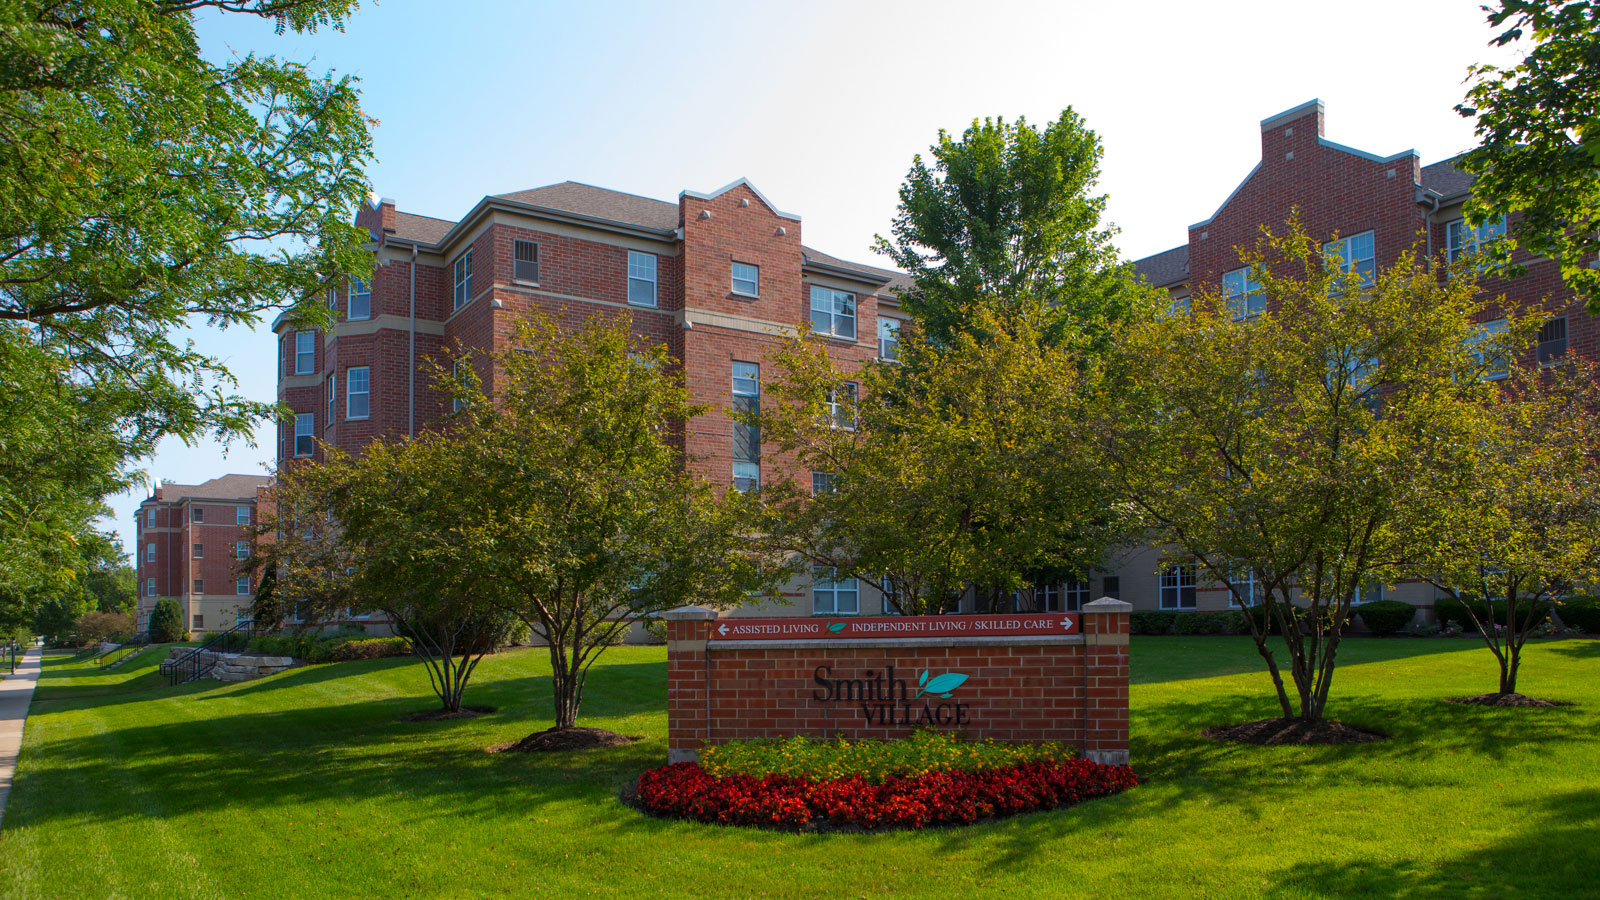 Senior Living Community in Chicago Smith Village